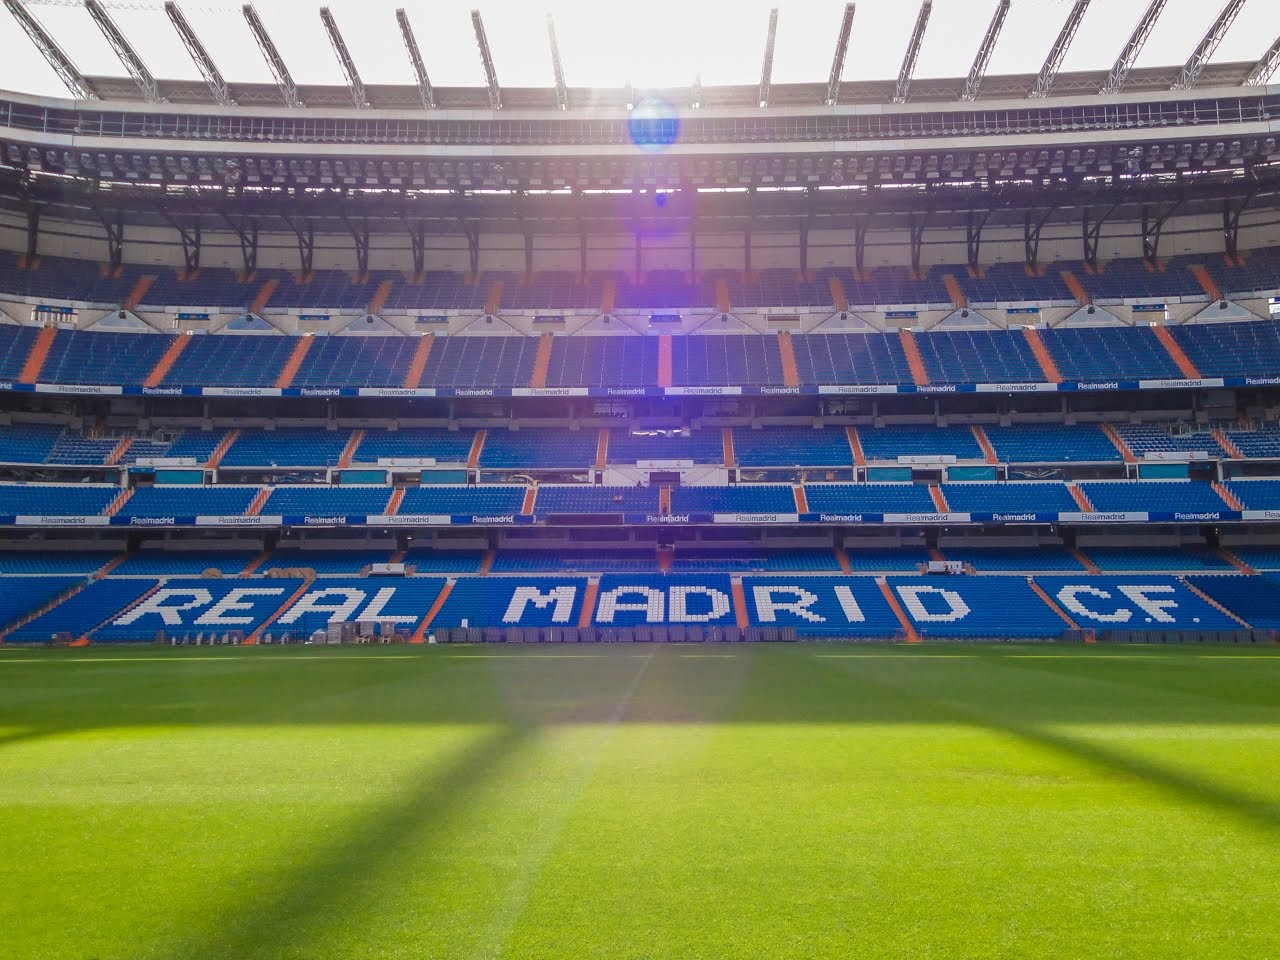 A beautiful day to be field level at the Estadio Santiago Bernabéu